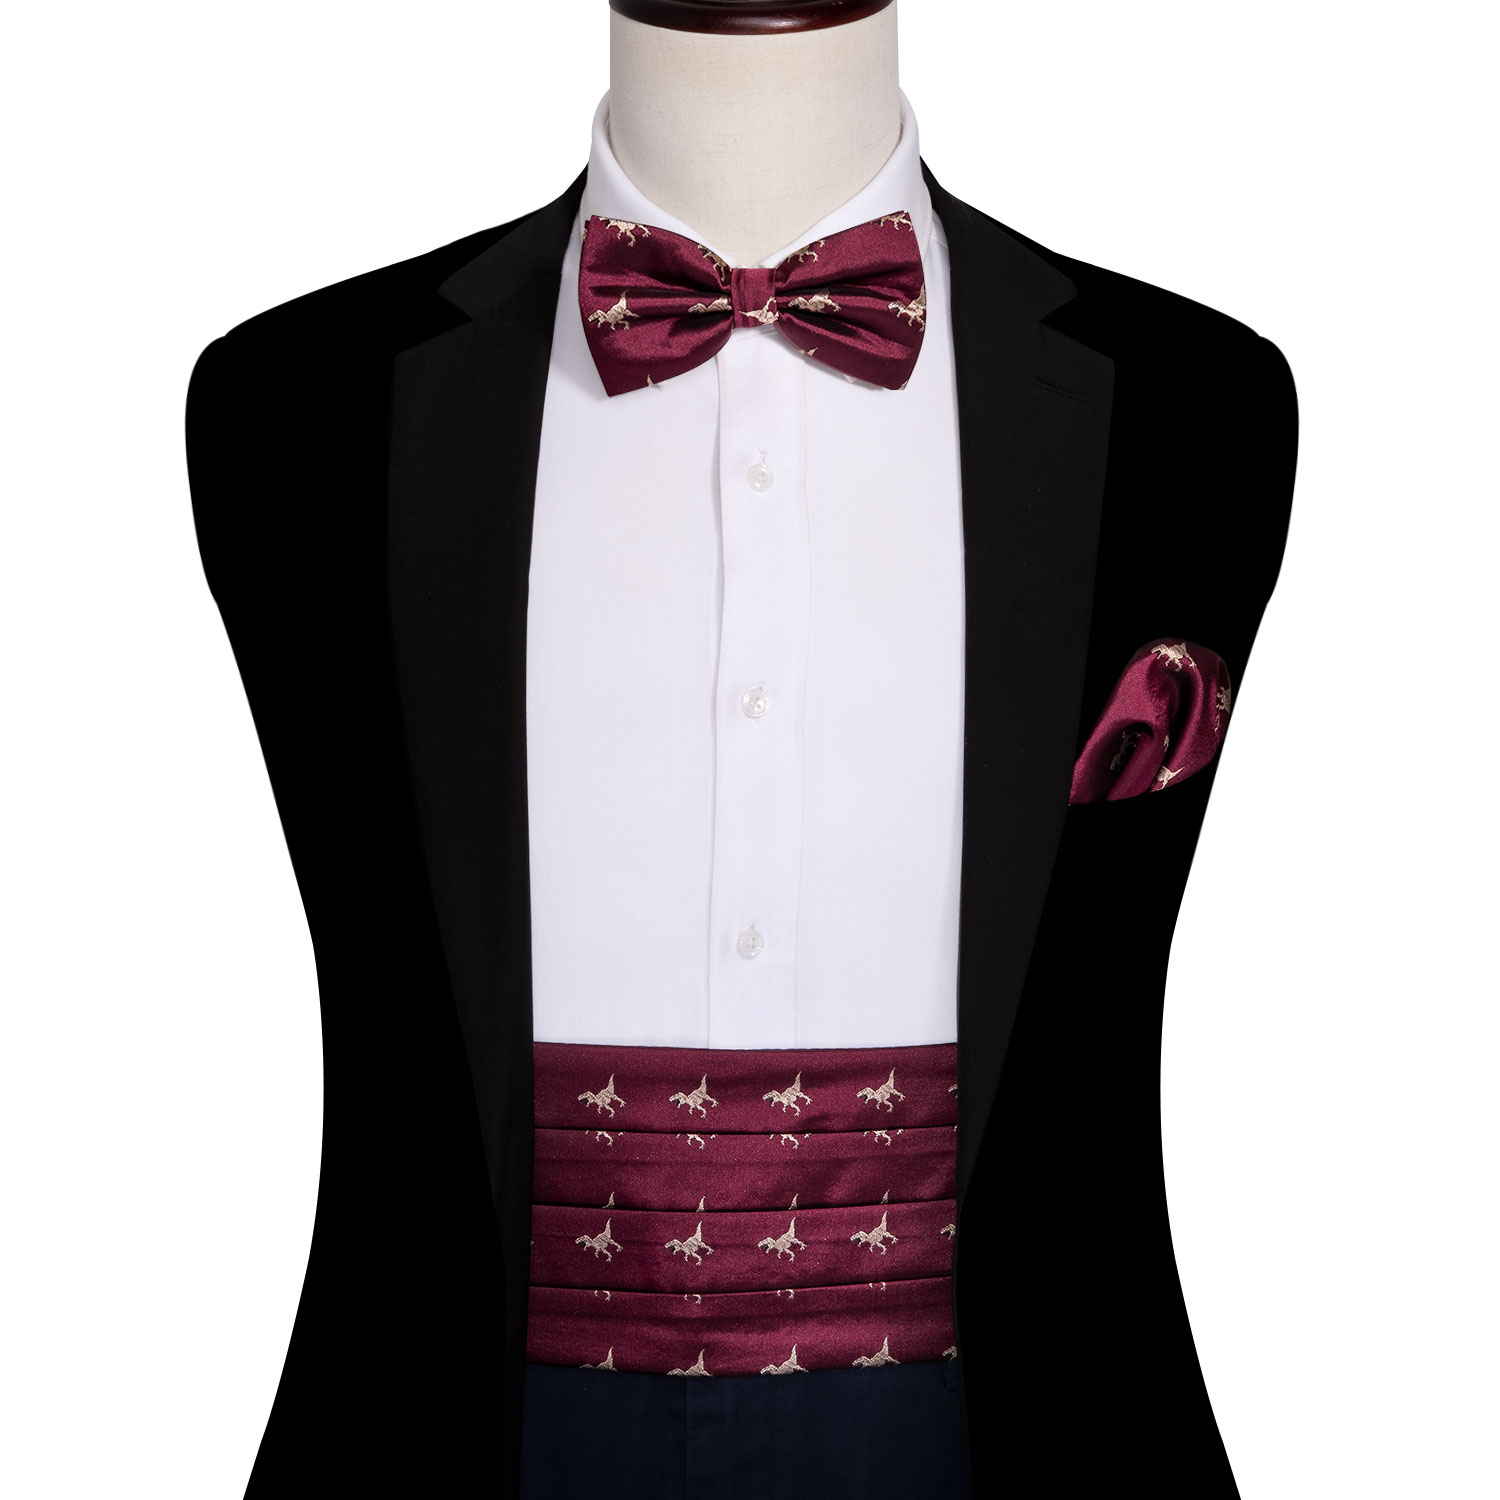 New Tuxedo Formal Red Polka Dots On Black Adjustable Bow tie And Suspenders Set